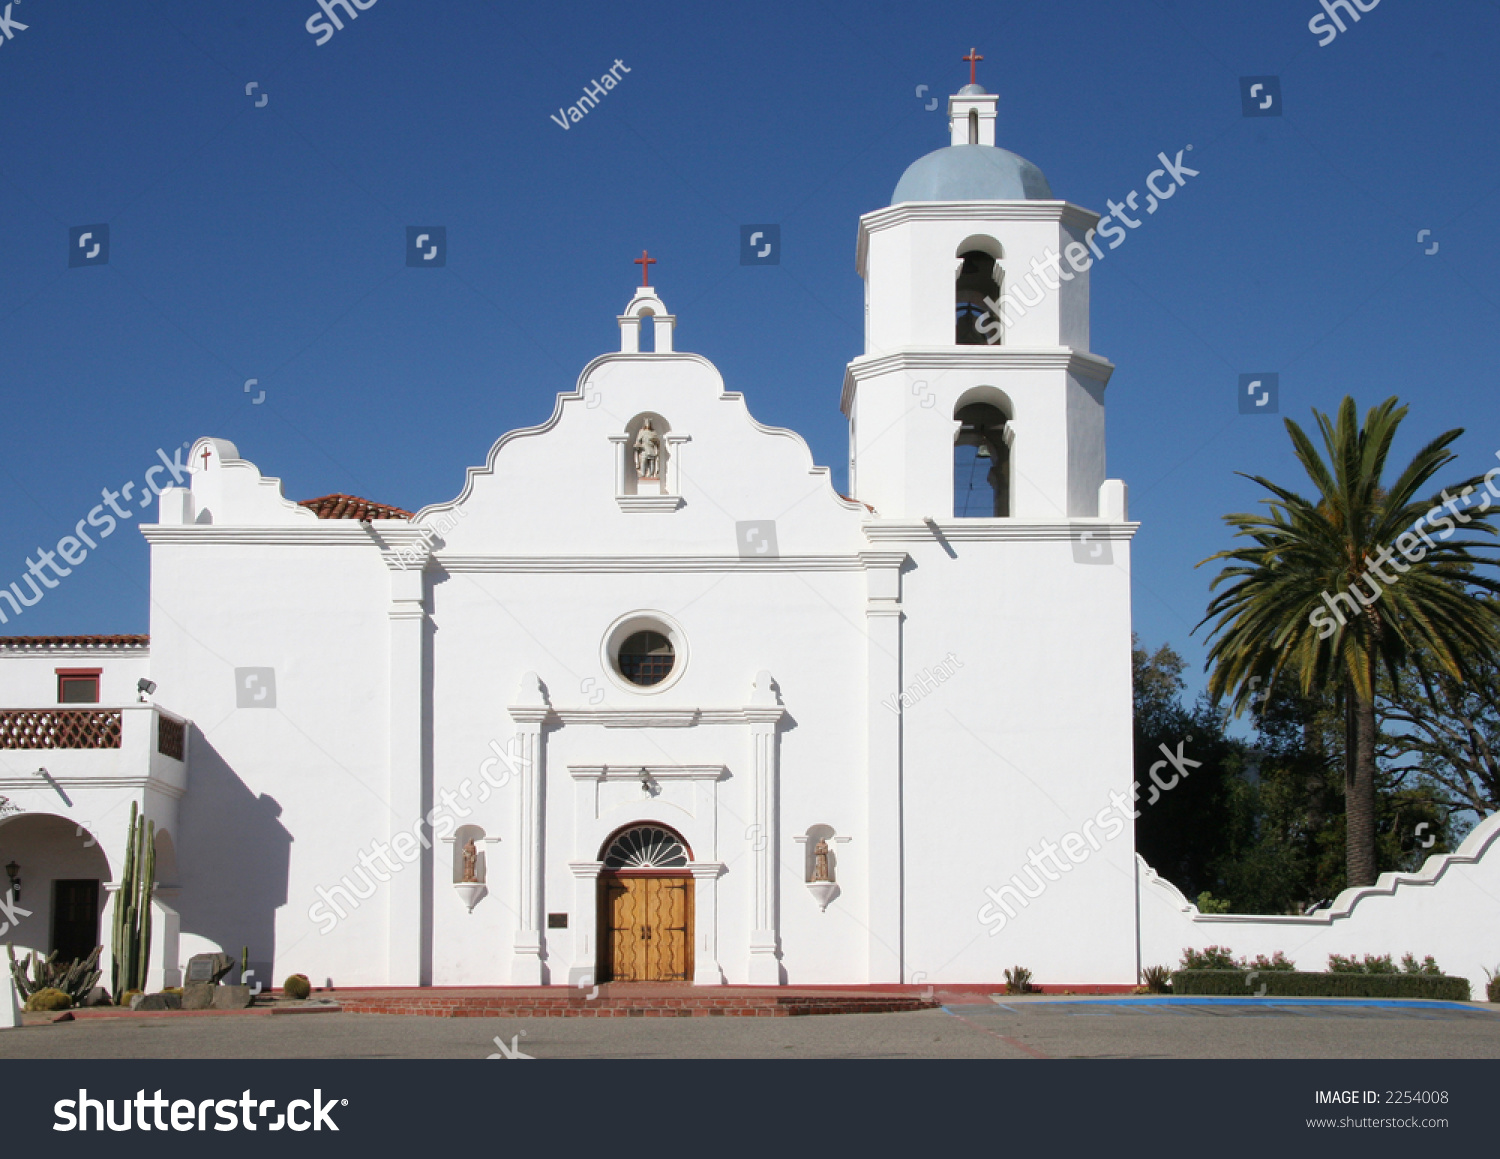 new church hispanic singles One can be the loneliest number, especially in the church today, there are more singles in the united states than at any other time in history – 436 percent of the us adult population are unmarried, according to the 2010 us census.